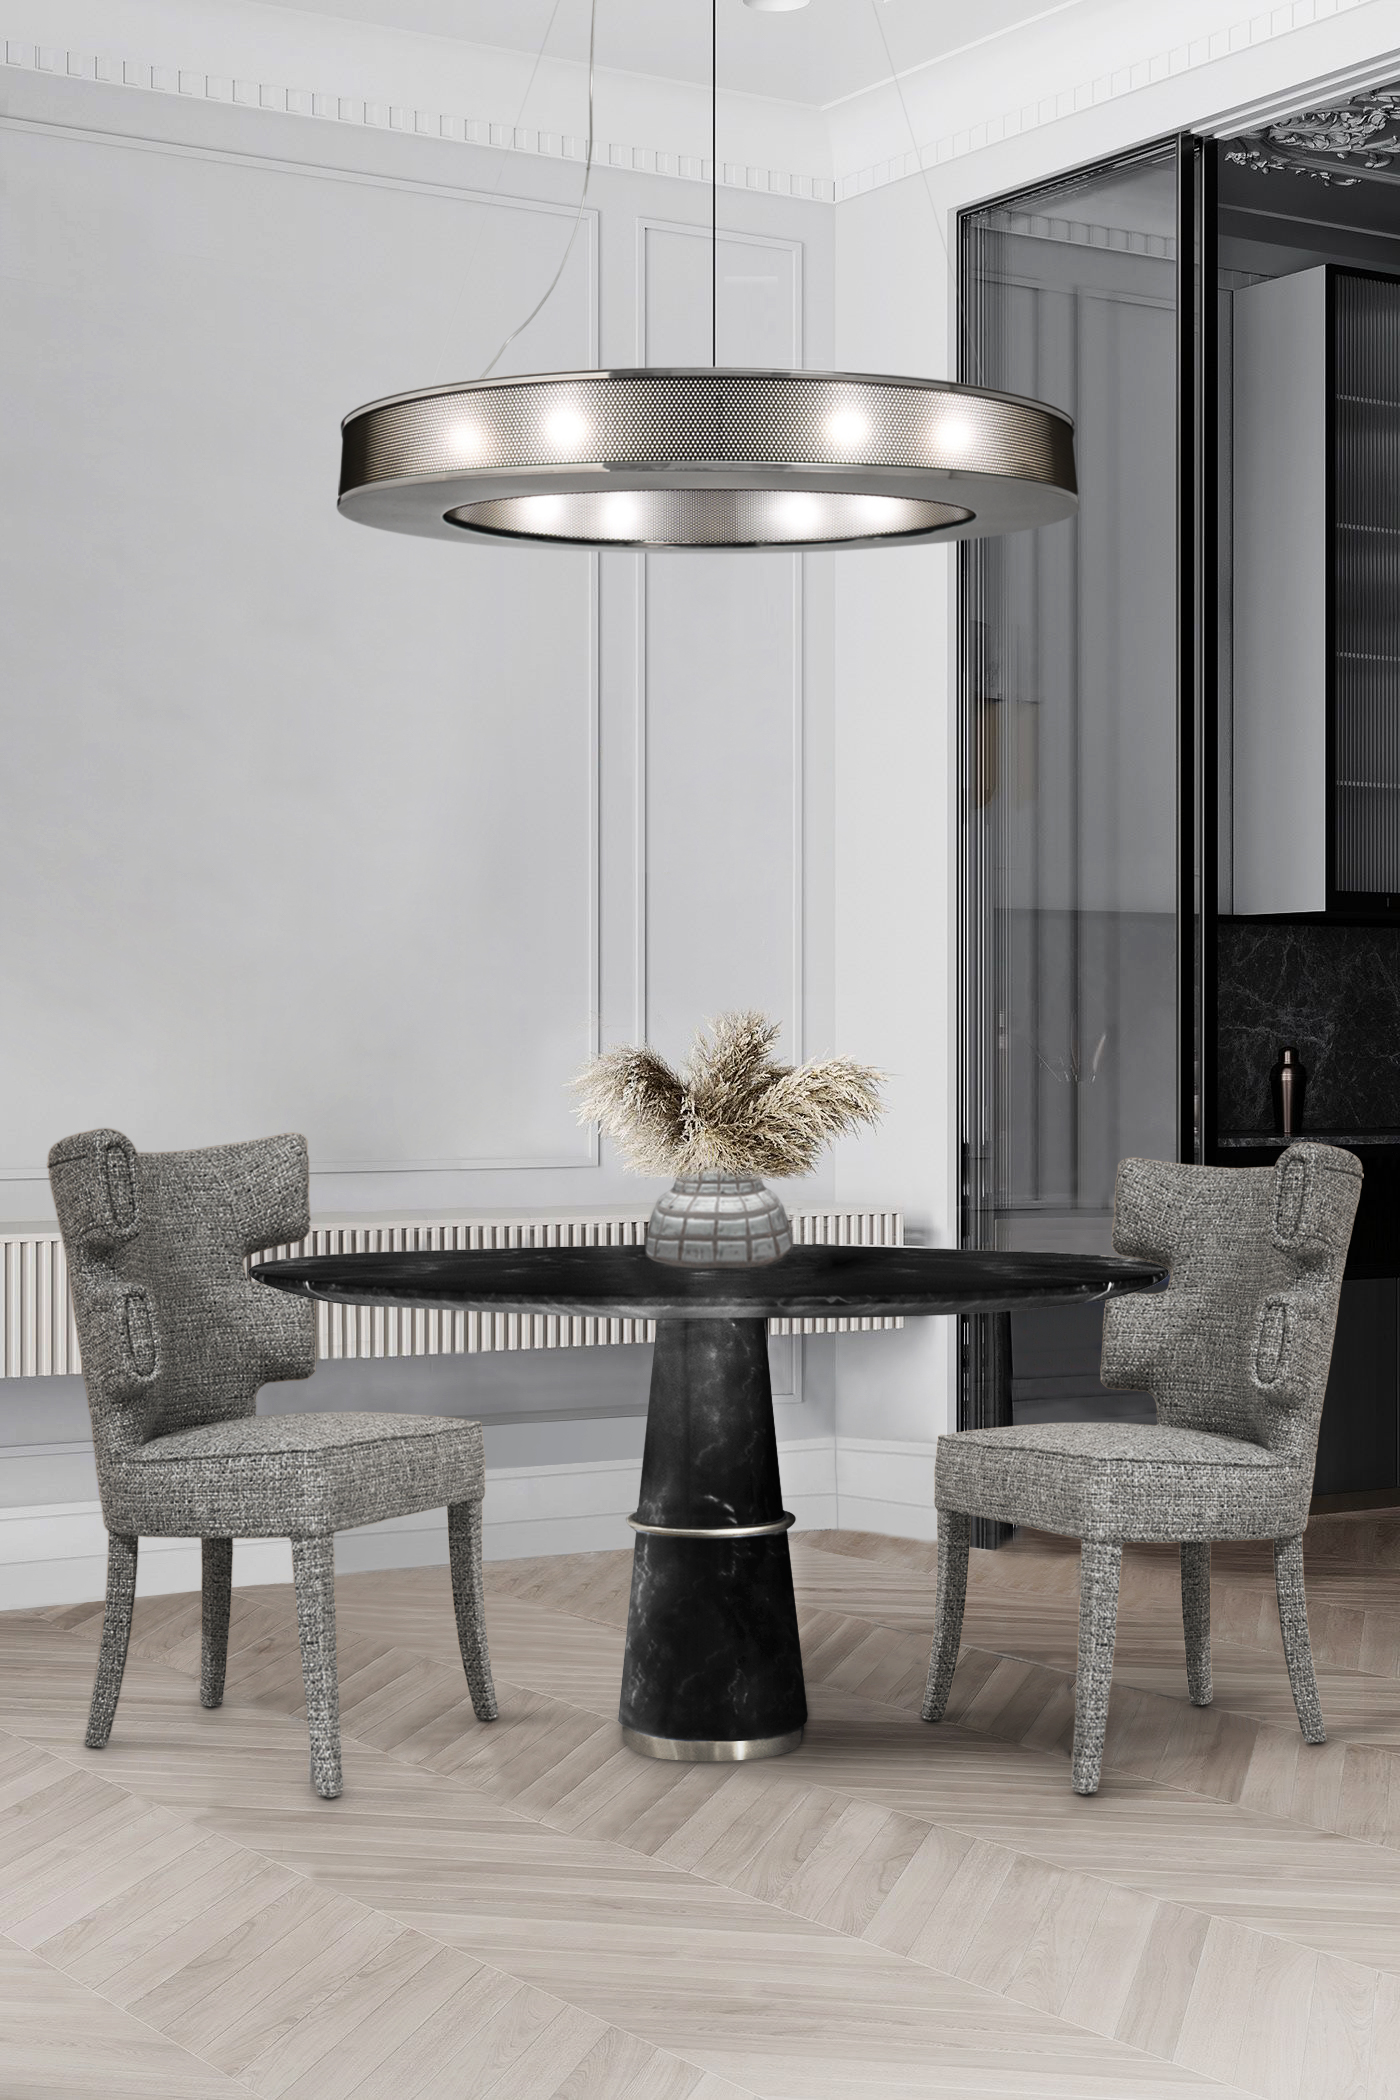 Let These Suspension Lamps be the Spotlight of Your Dining Table! suspension lamps Let These Suspension Lamps be the Spotlight of Your Dining Table! 4 6